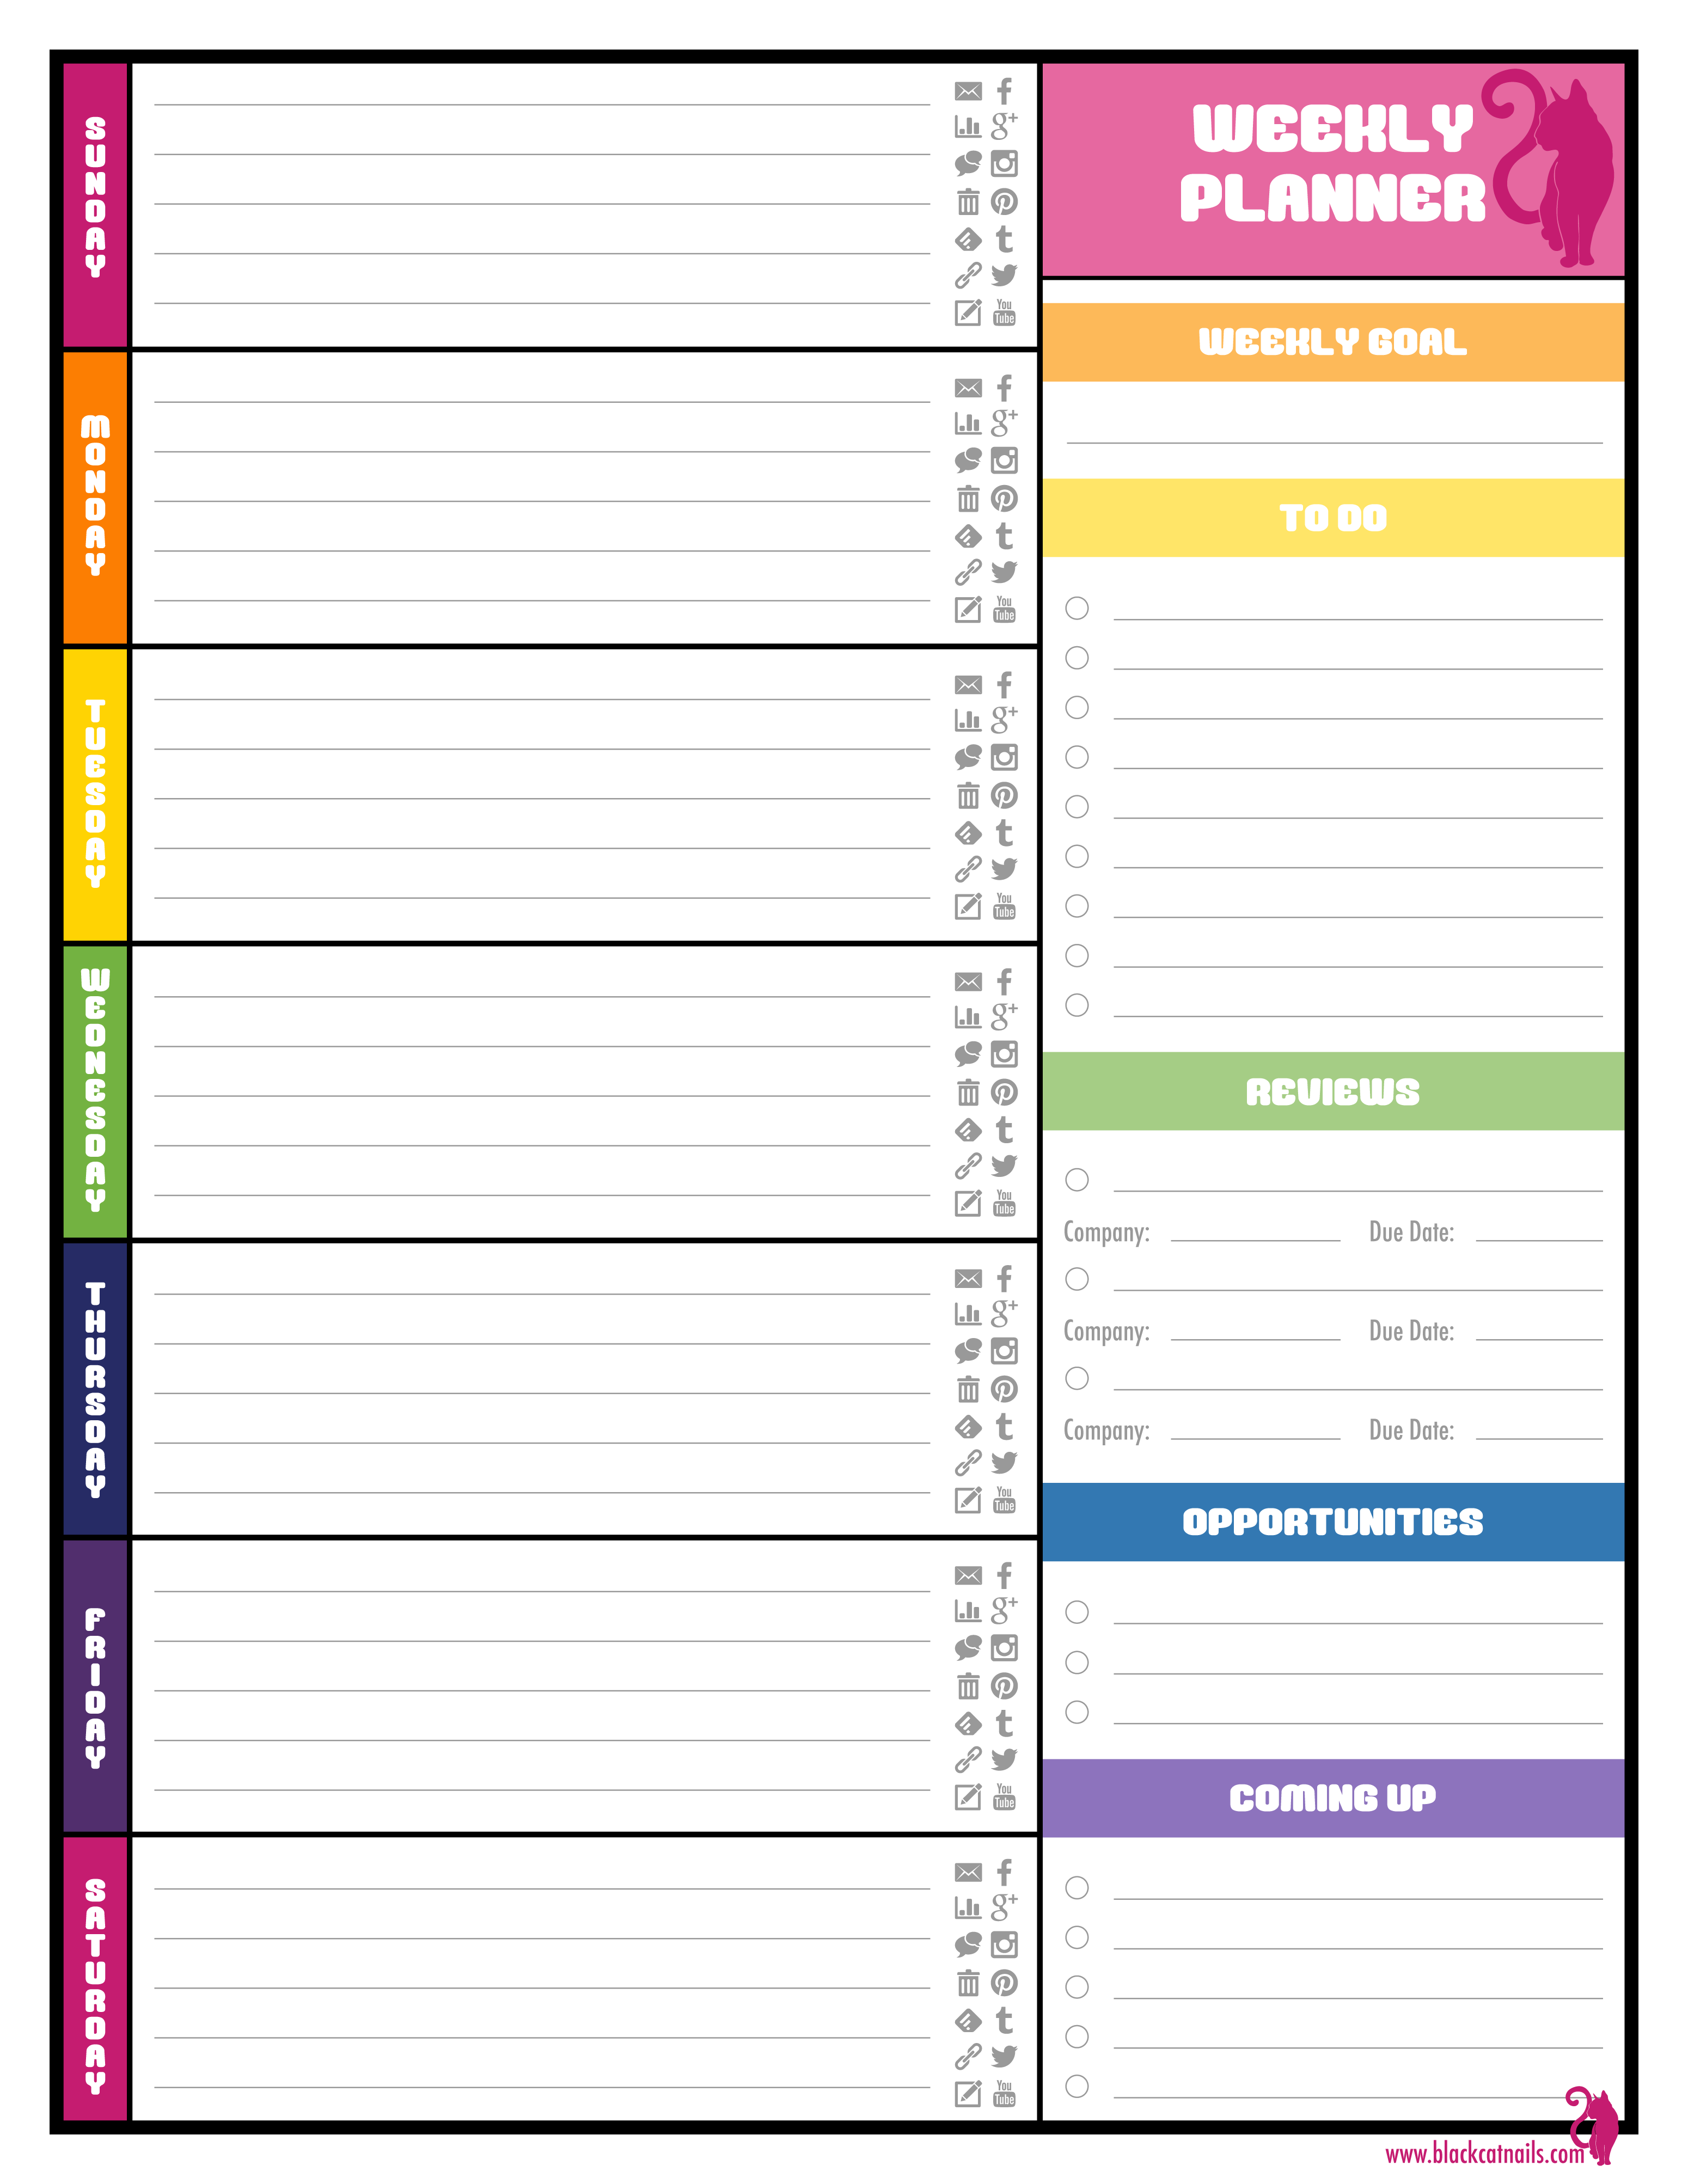 6 Images of Daily Weekly Printable Planner For 2016